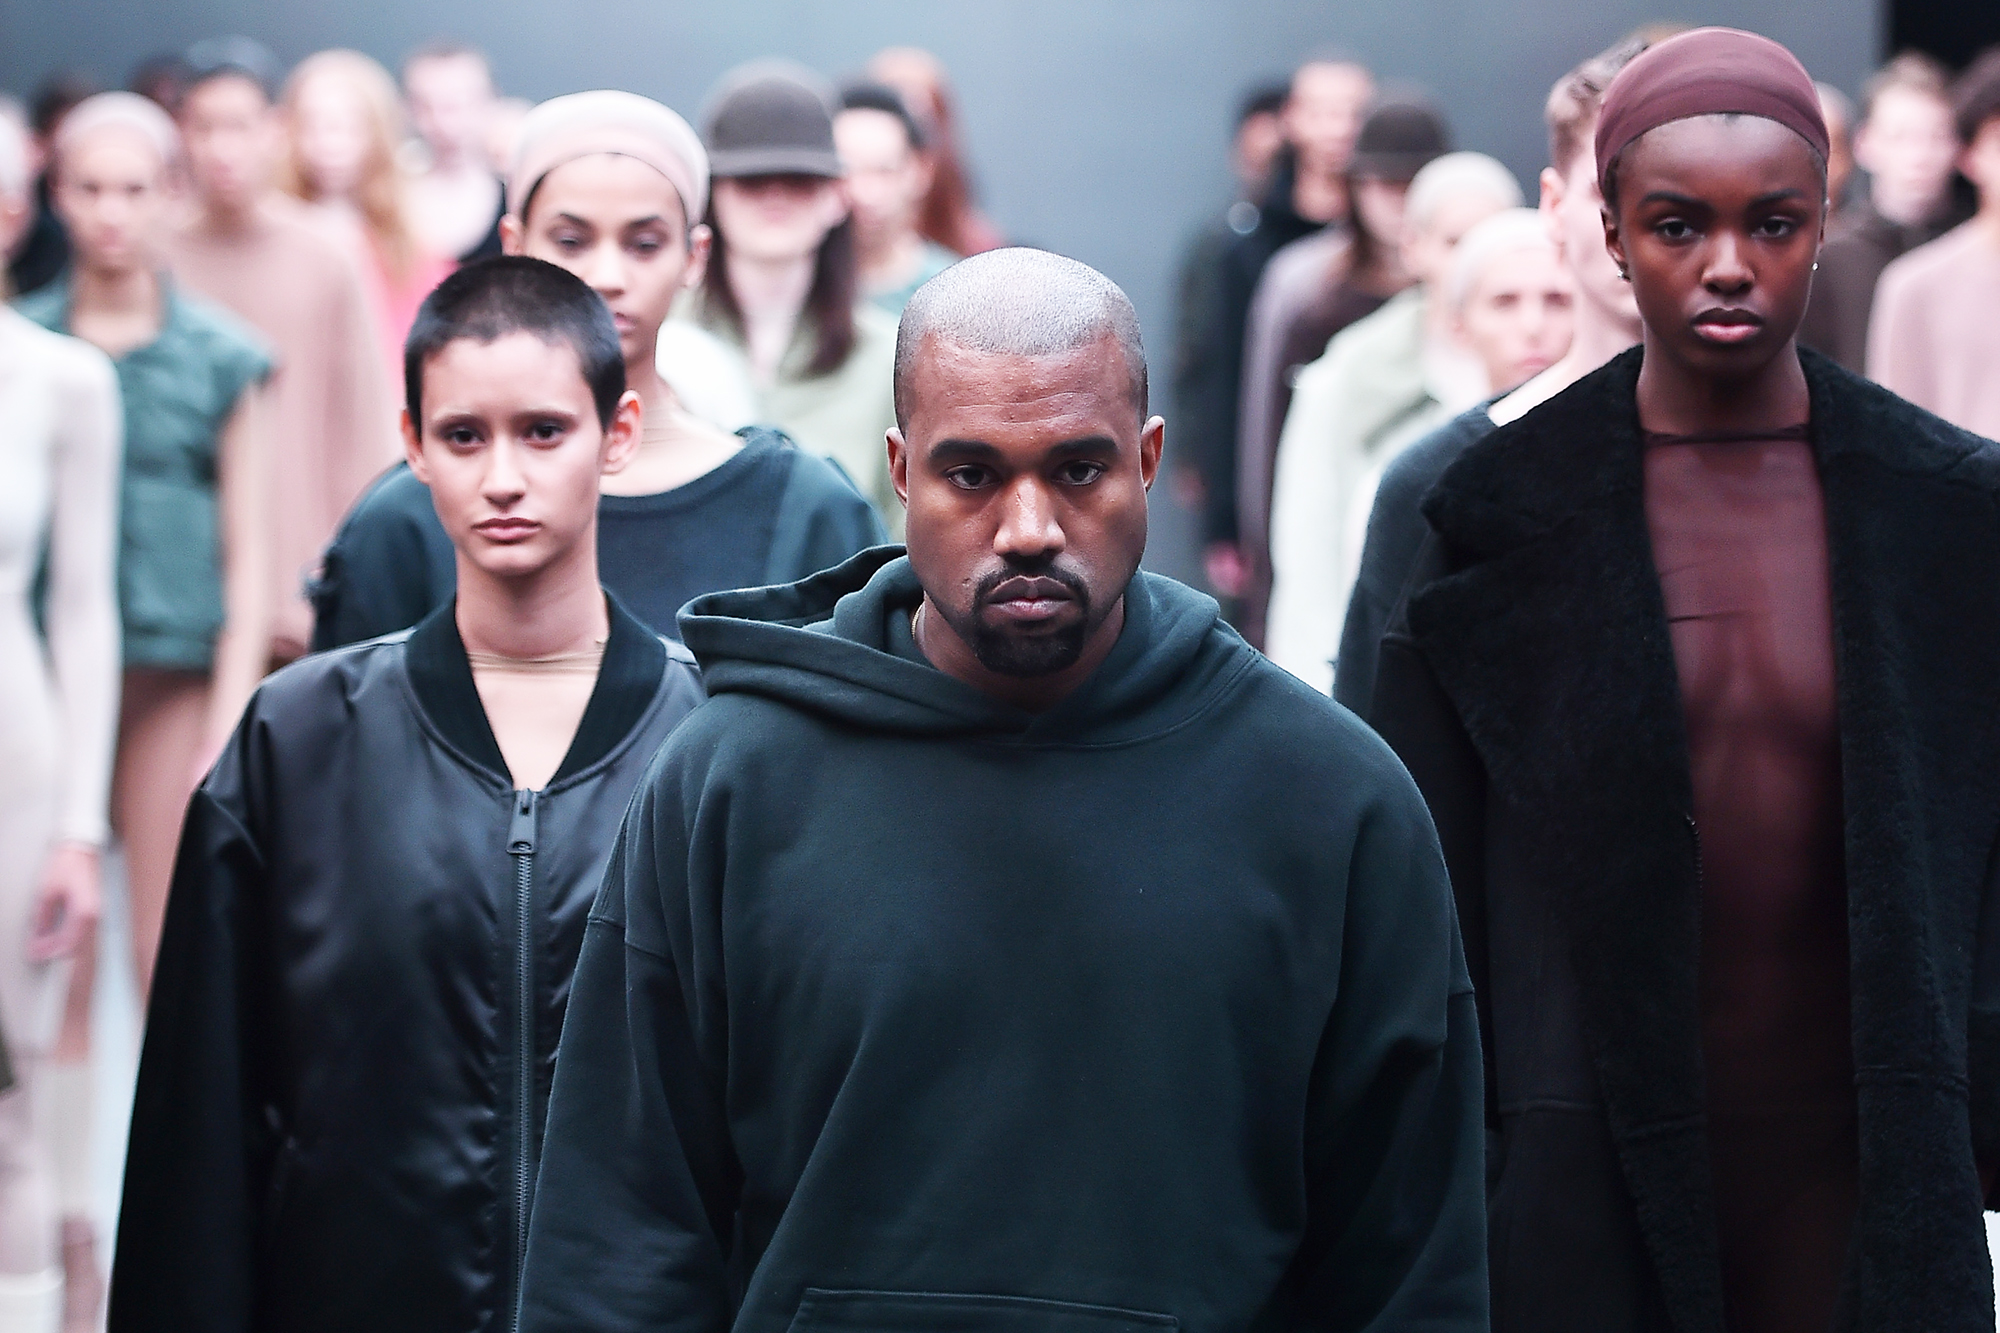 Kanye West on the runway at the Adidas Originals x Kanye West Yeezy Season 1 fashion show during New York Fashion Week Fall 2015 in New York City, on Feb. 12, 2015.